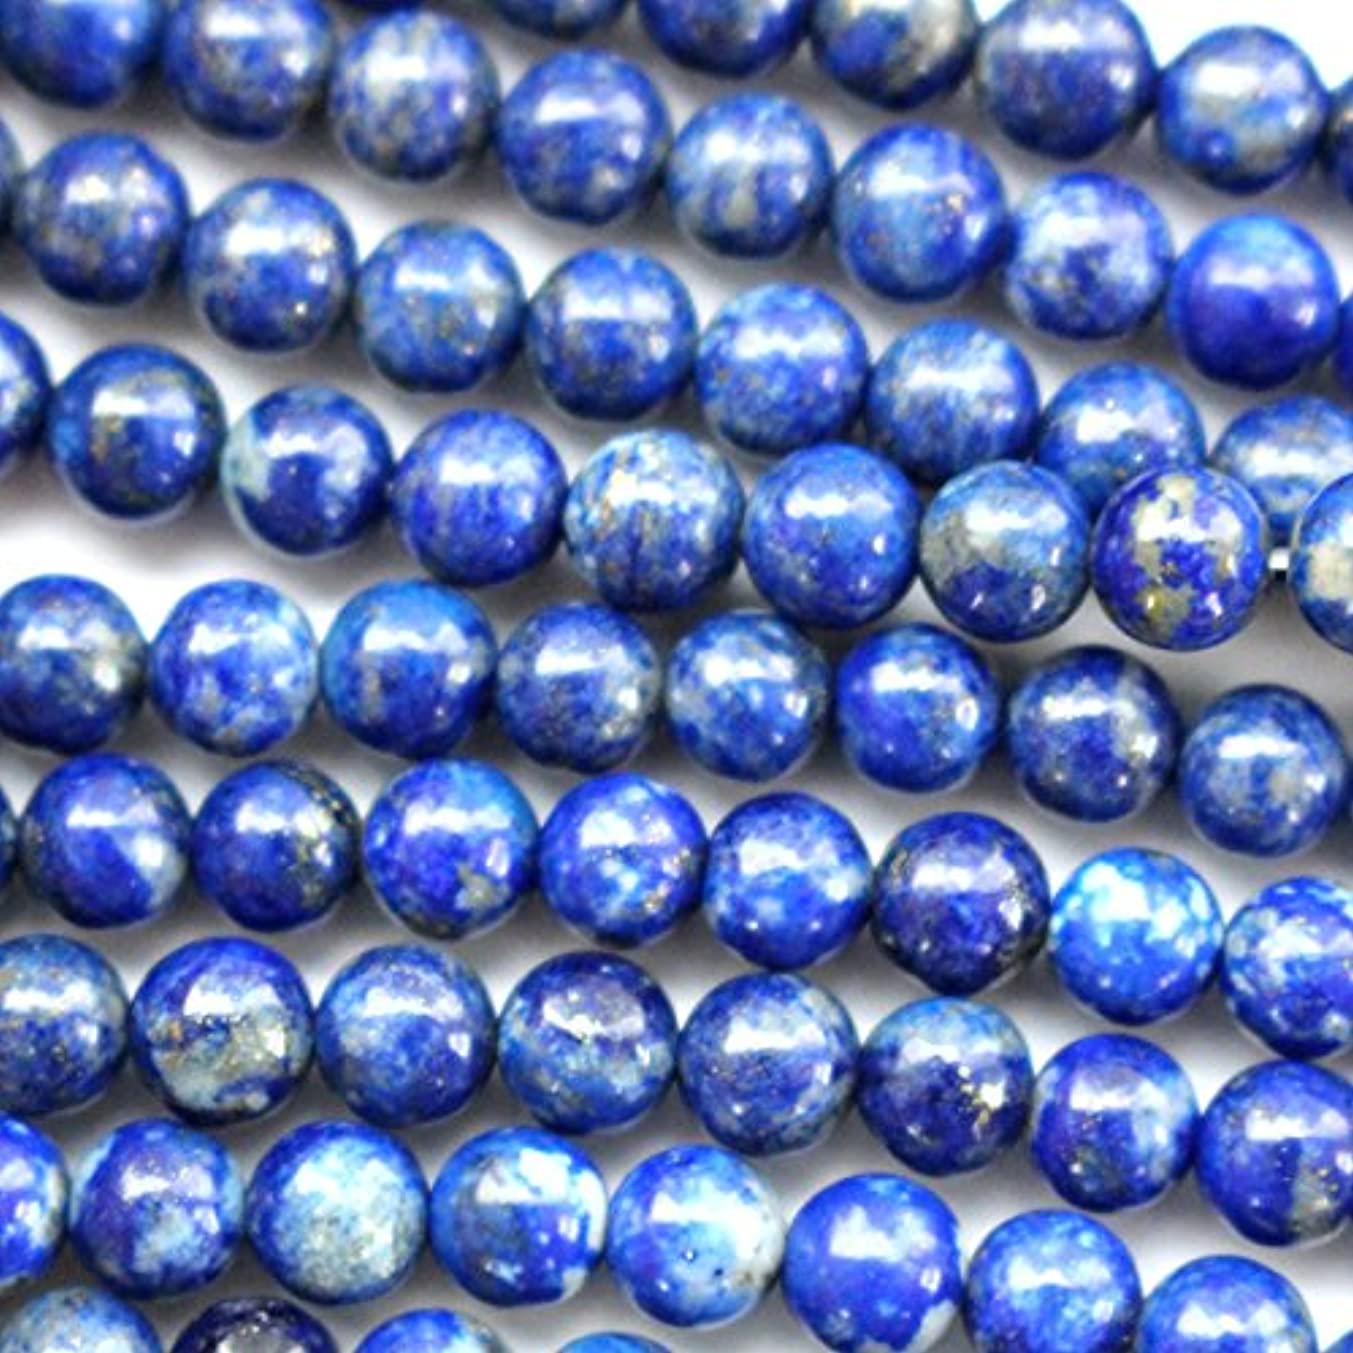 Tacool fashiontrenda Natural Color Genuine Blue Lapis Lazuli Real Gemstone Loose Beads for Necklace Jewelry Making